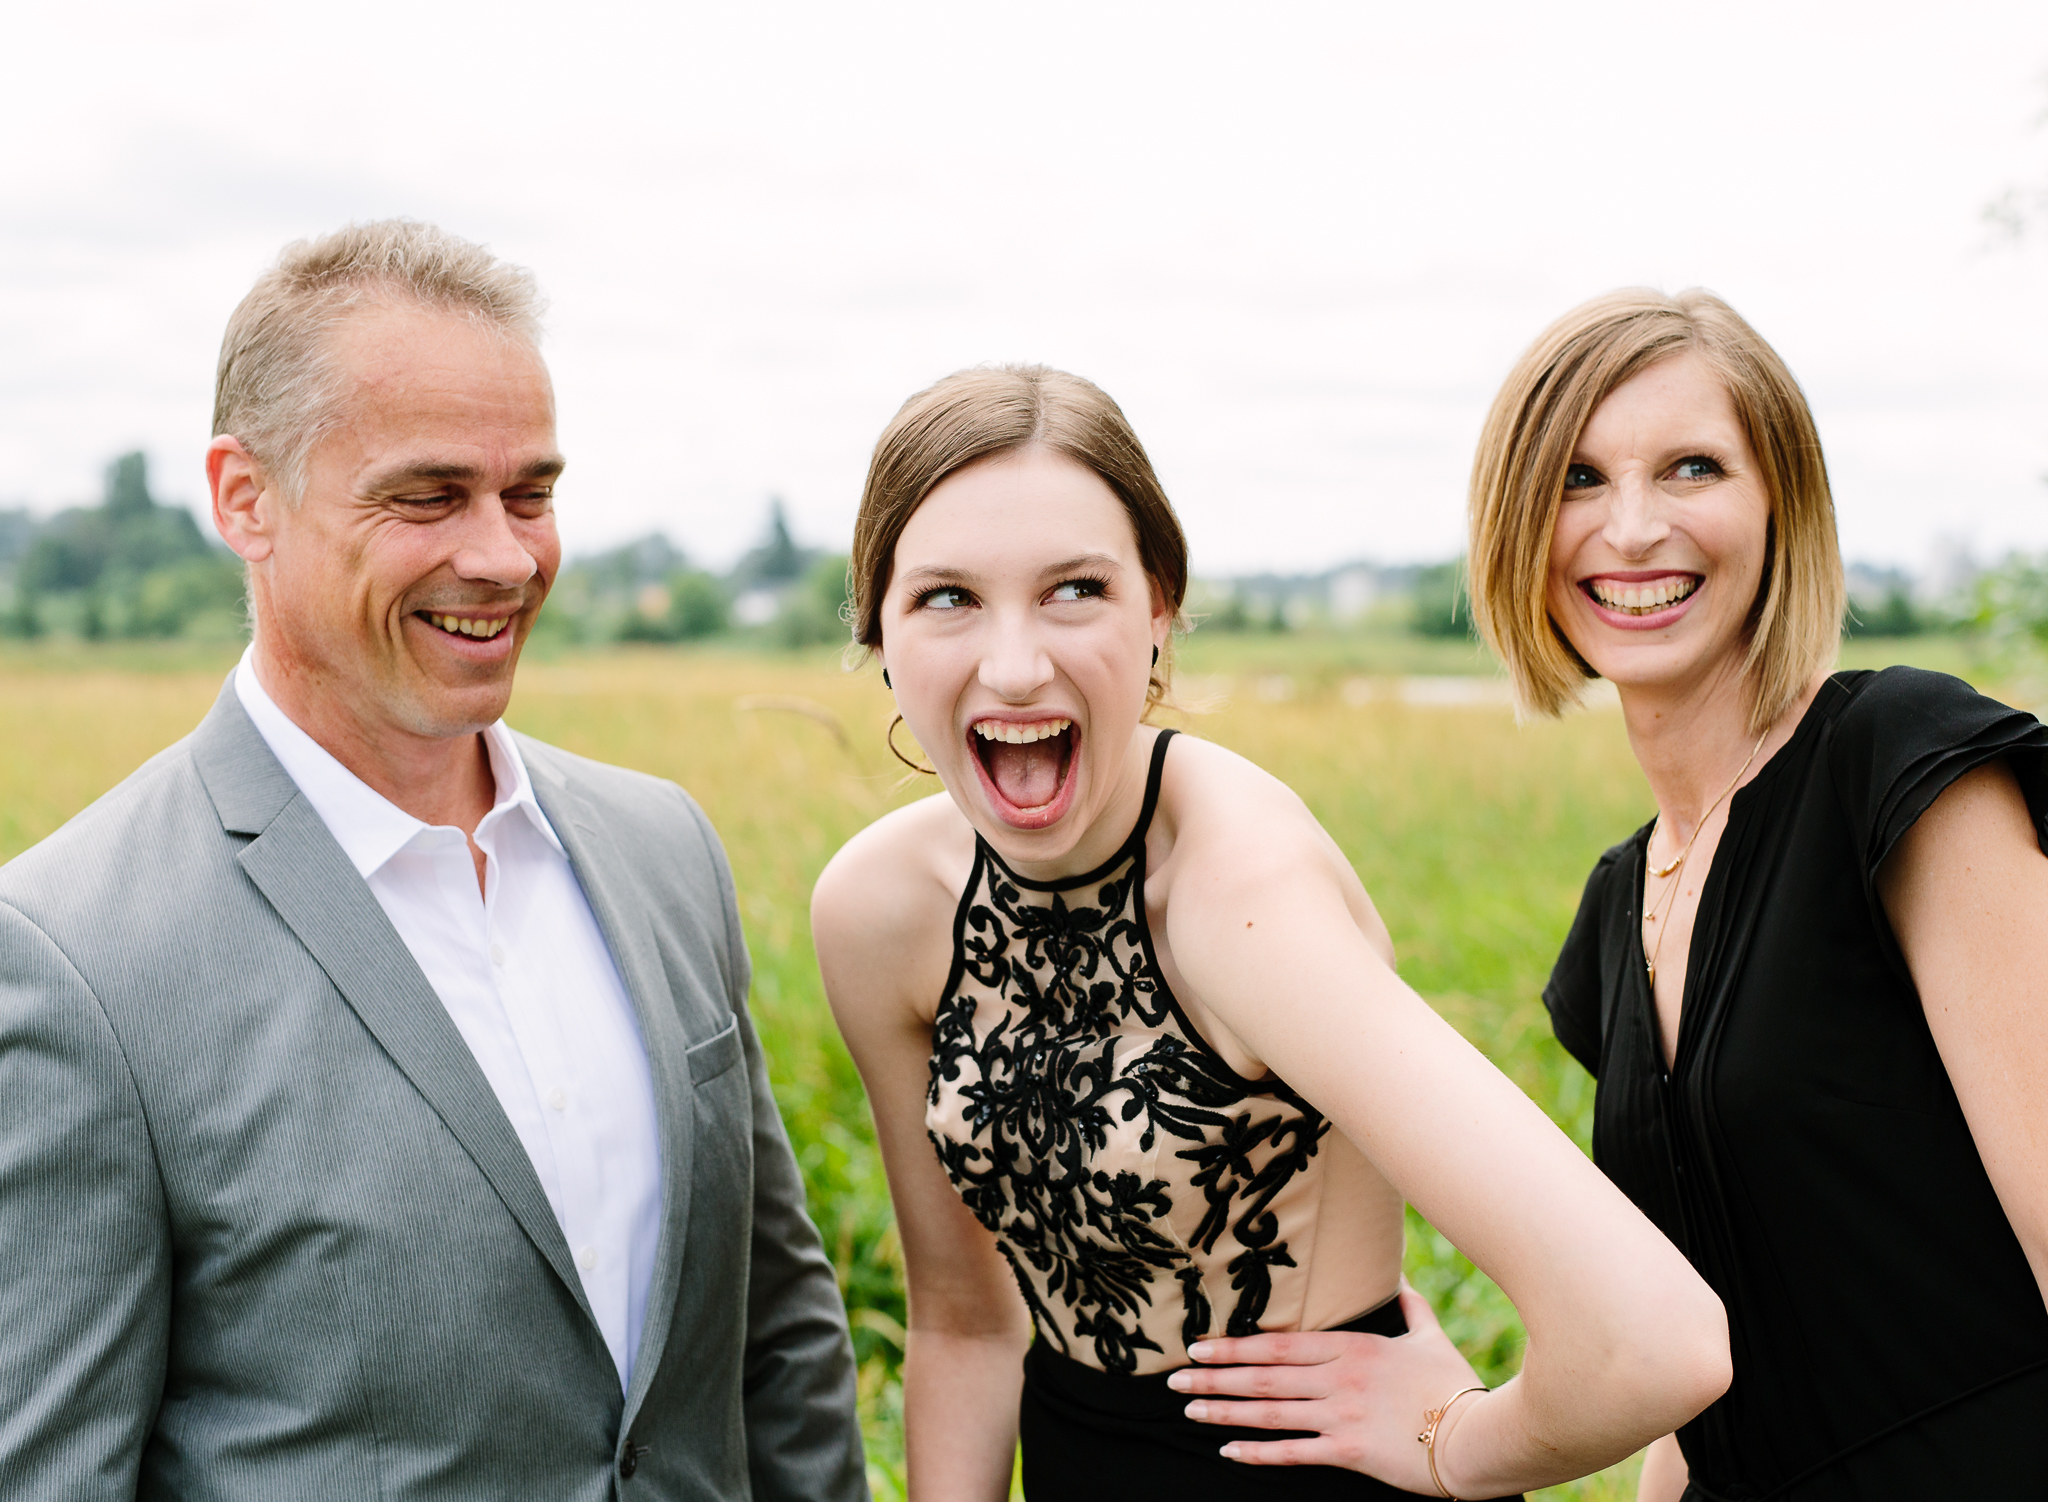 Abbotsford, Chilliwack, Langley, British Columbia| Prom Photographer| Teen Photographer | Prom Graduation Senior Session| Claudia Wyler Photography and Films